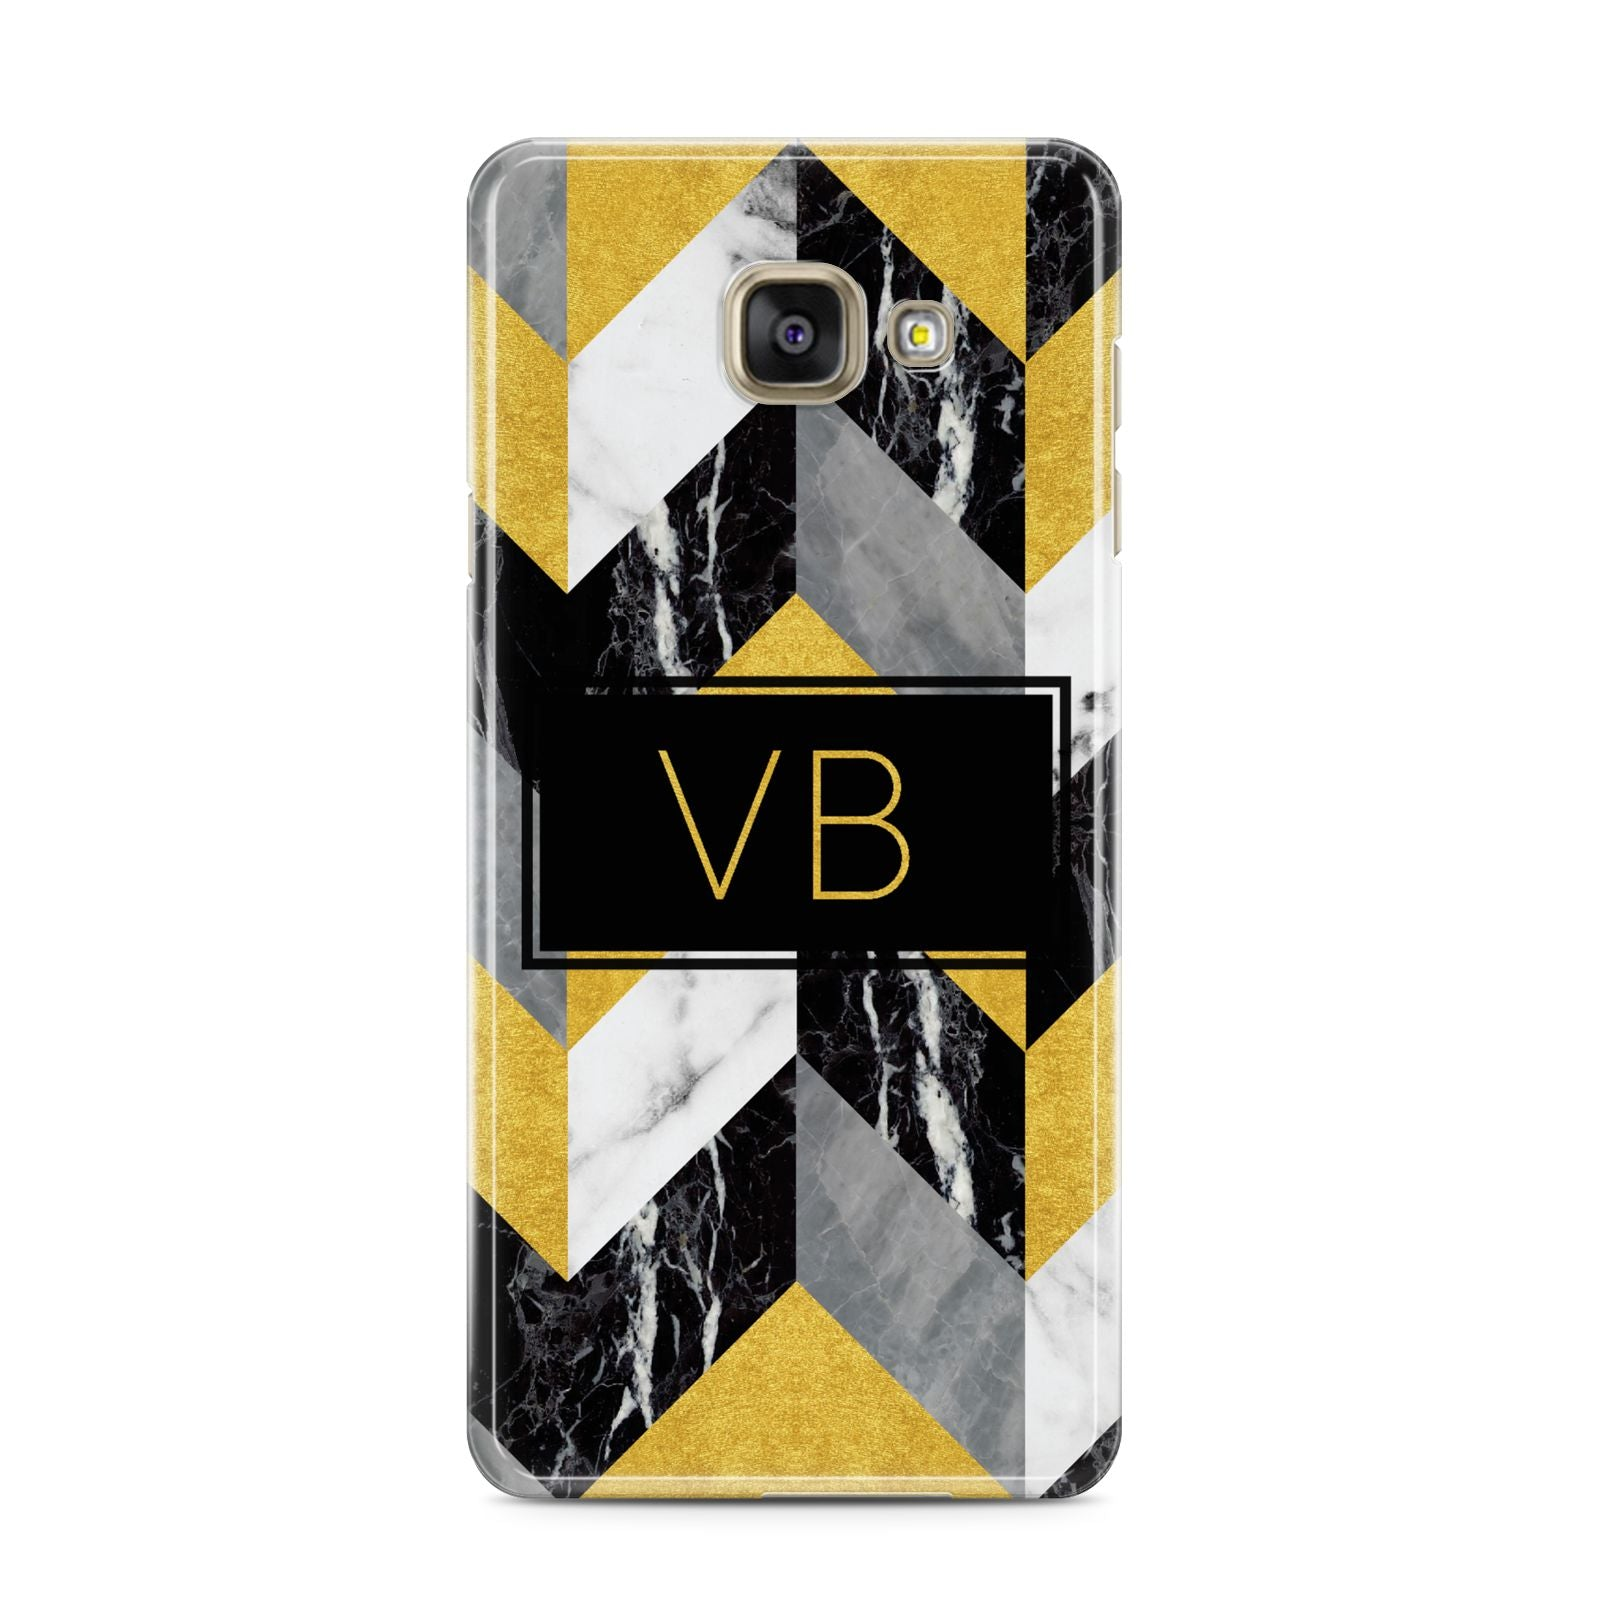 Personalised Marble Effect Initials Samsung Galaxy A3 2016 Case on gold phone